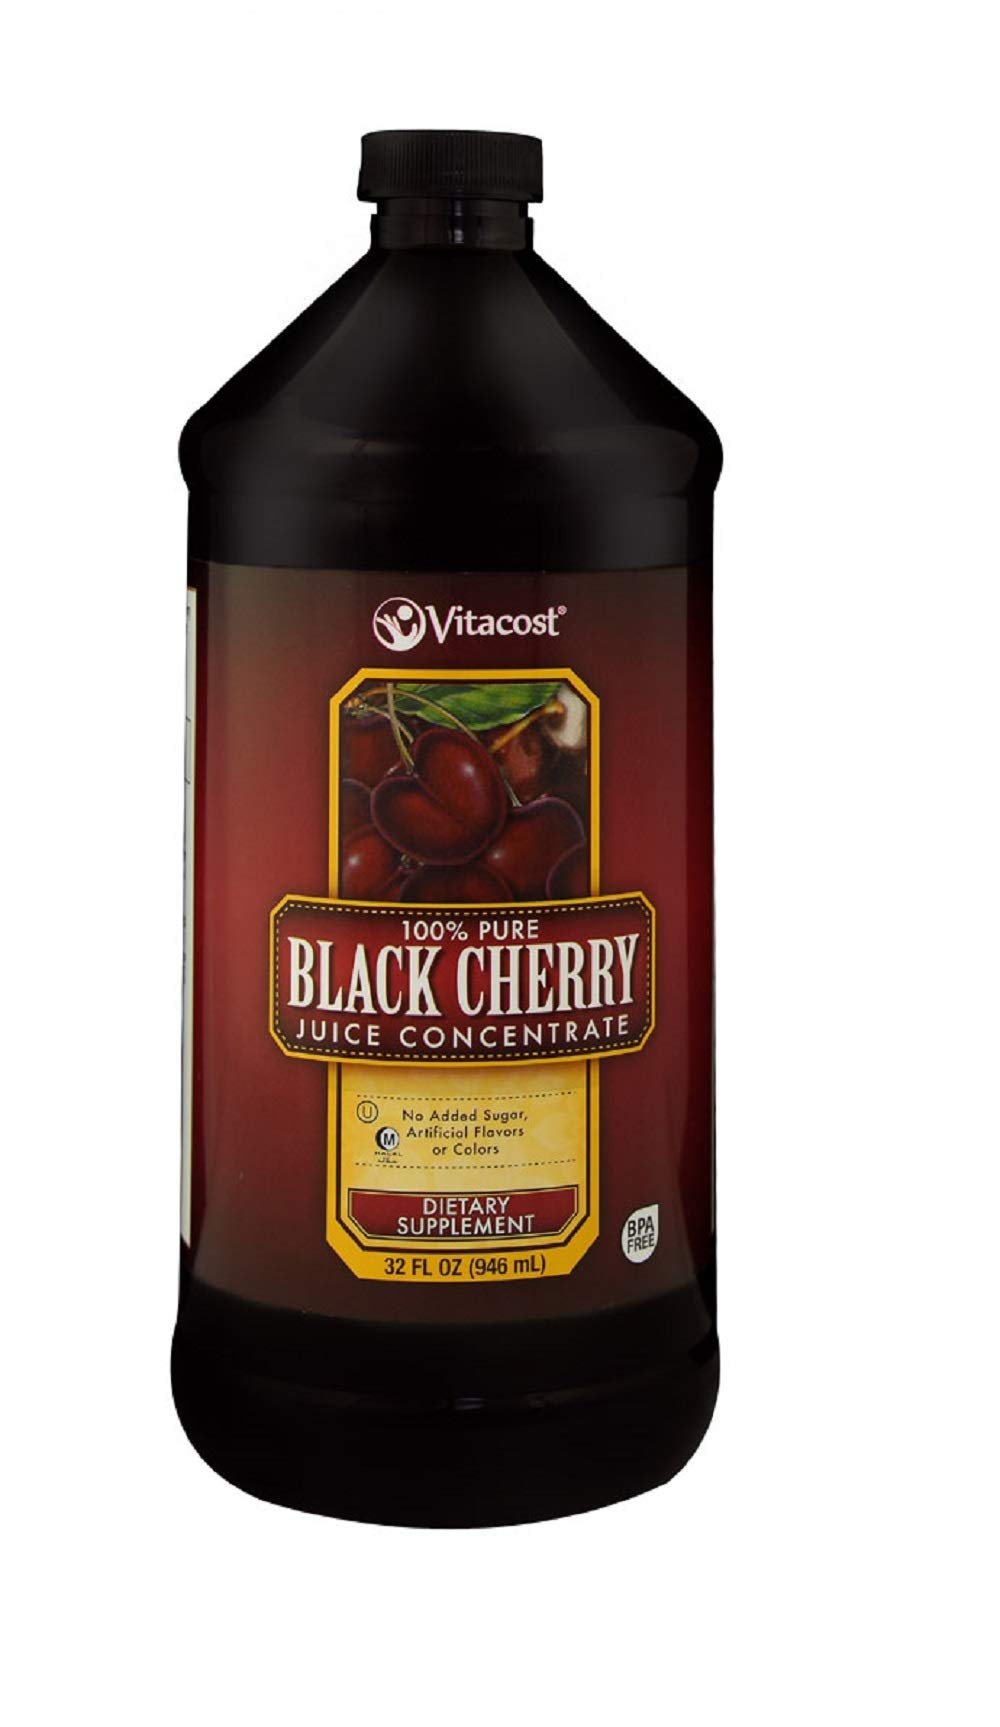 Vitacost 100% Pure Black Cherry Juice Concentrate -- 32 fl oz